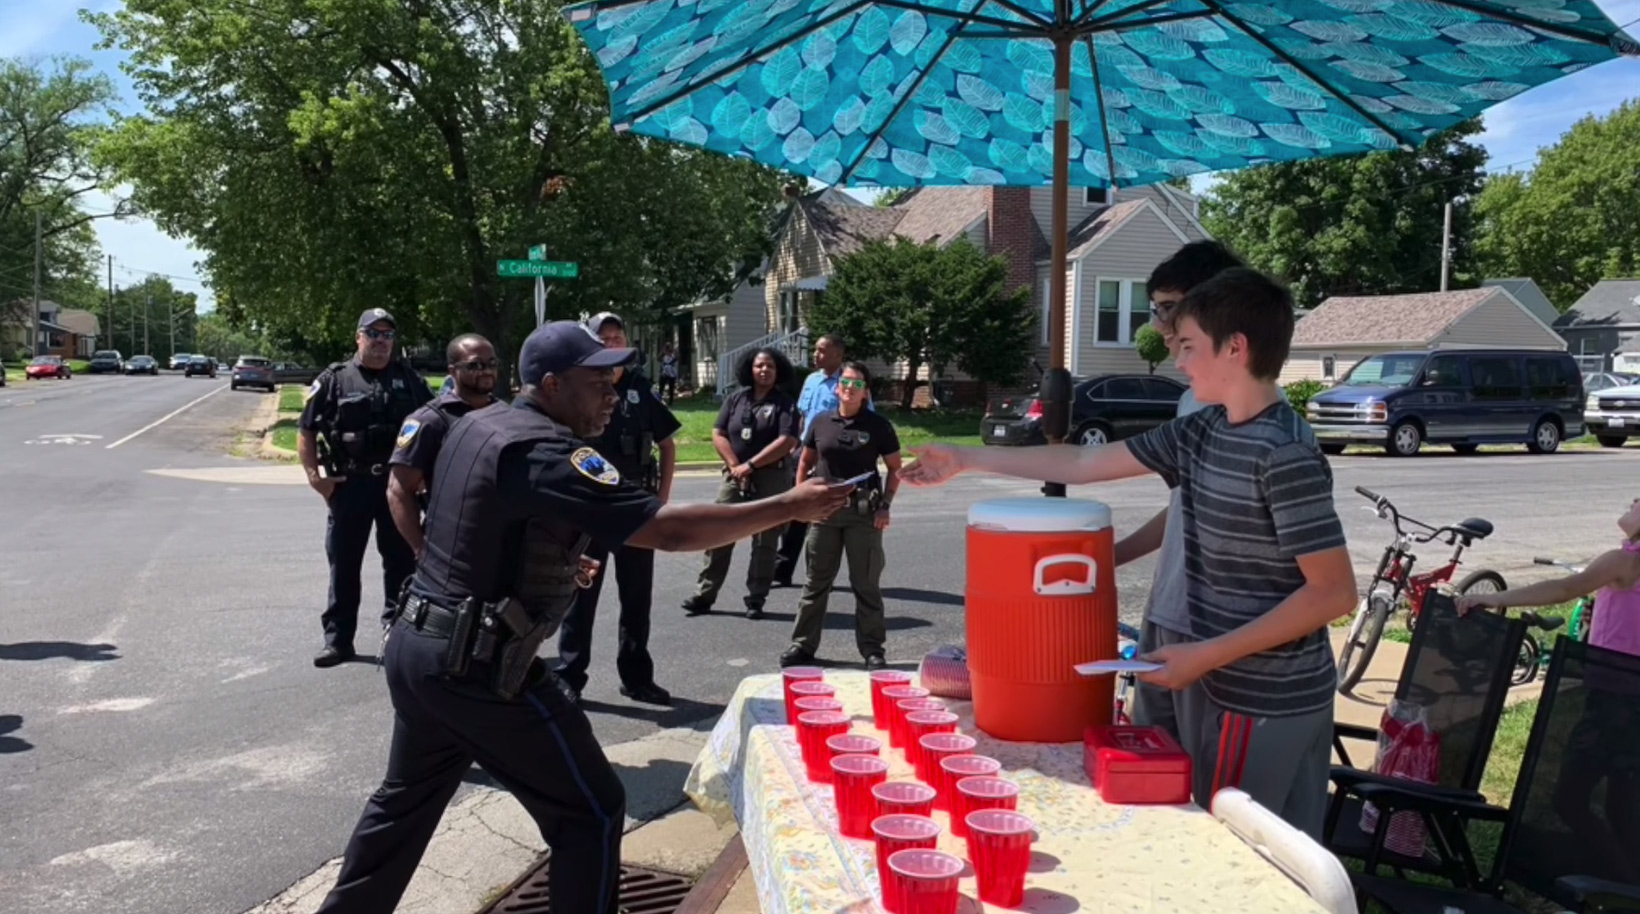 Two boys selling lemonade were robbed at gunpoint. Then their community stepped in to help